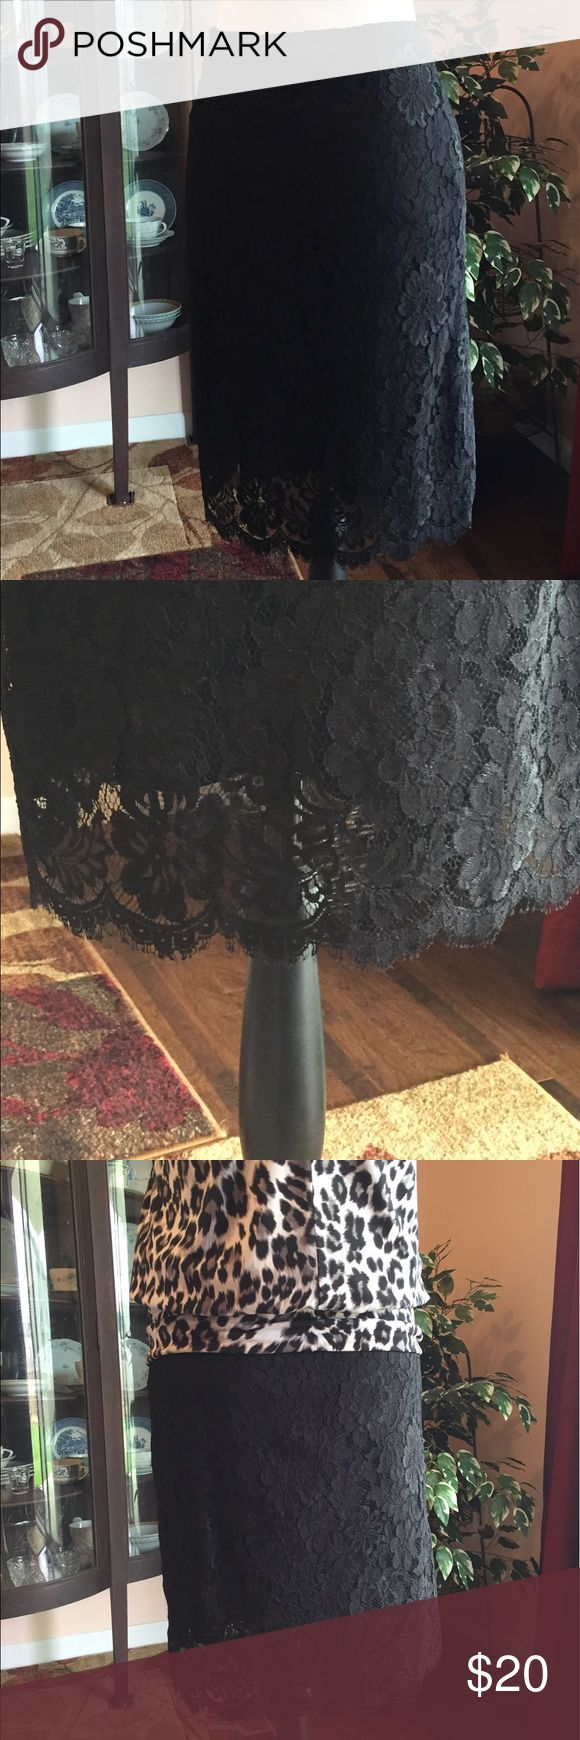 EUC black lace Brooks Brothers Petite skirt 10 EUC black lace Brooks Brothers Petite skirt 10. Fully lined. Approximate measurements when laid flat are waist 14, length 23.5. Comes from a smoke free home, thank you! Brooks Brothers Skirts Midi